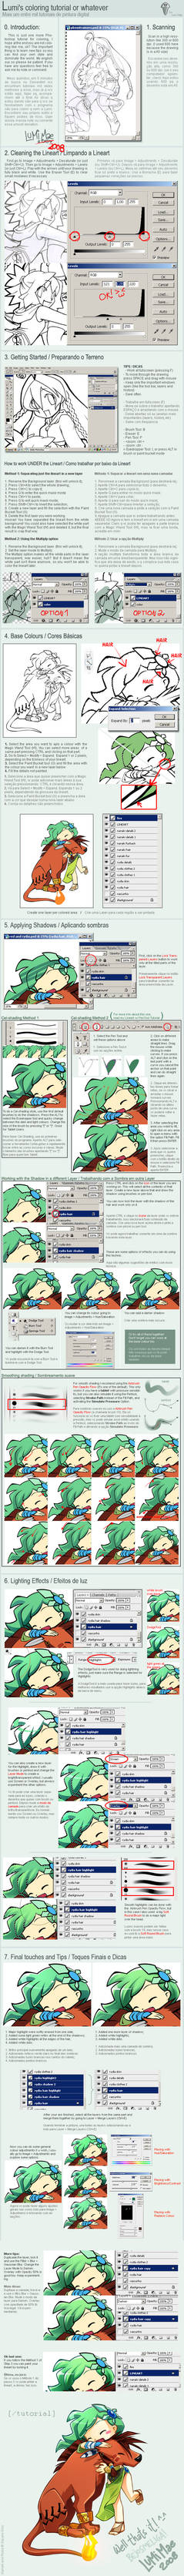 Photoshop: Colouring Tutorial